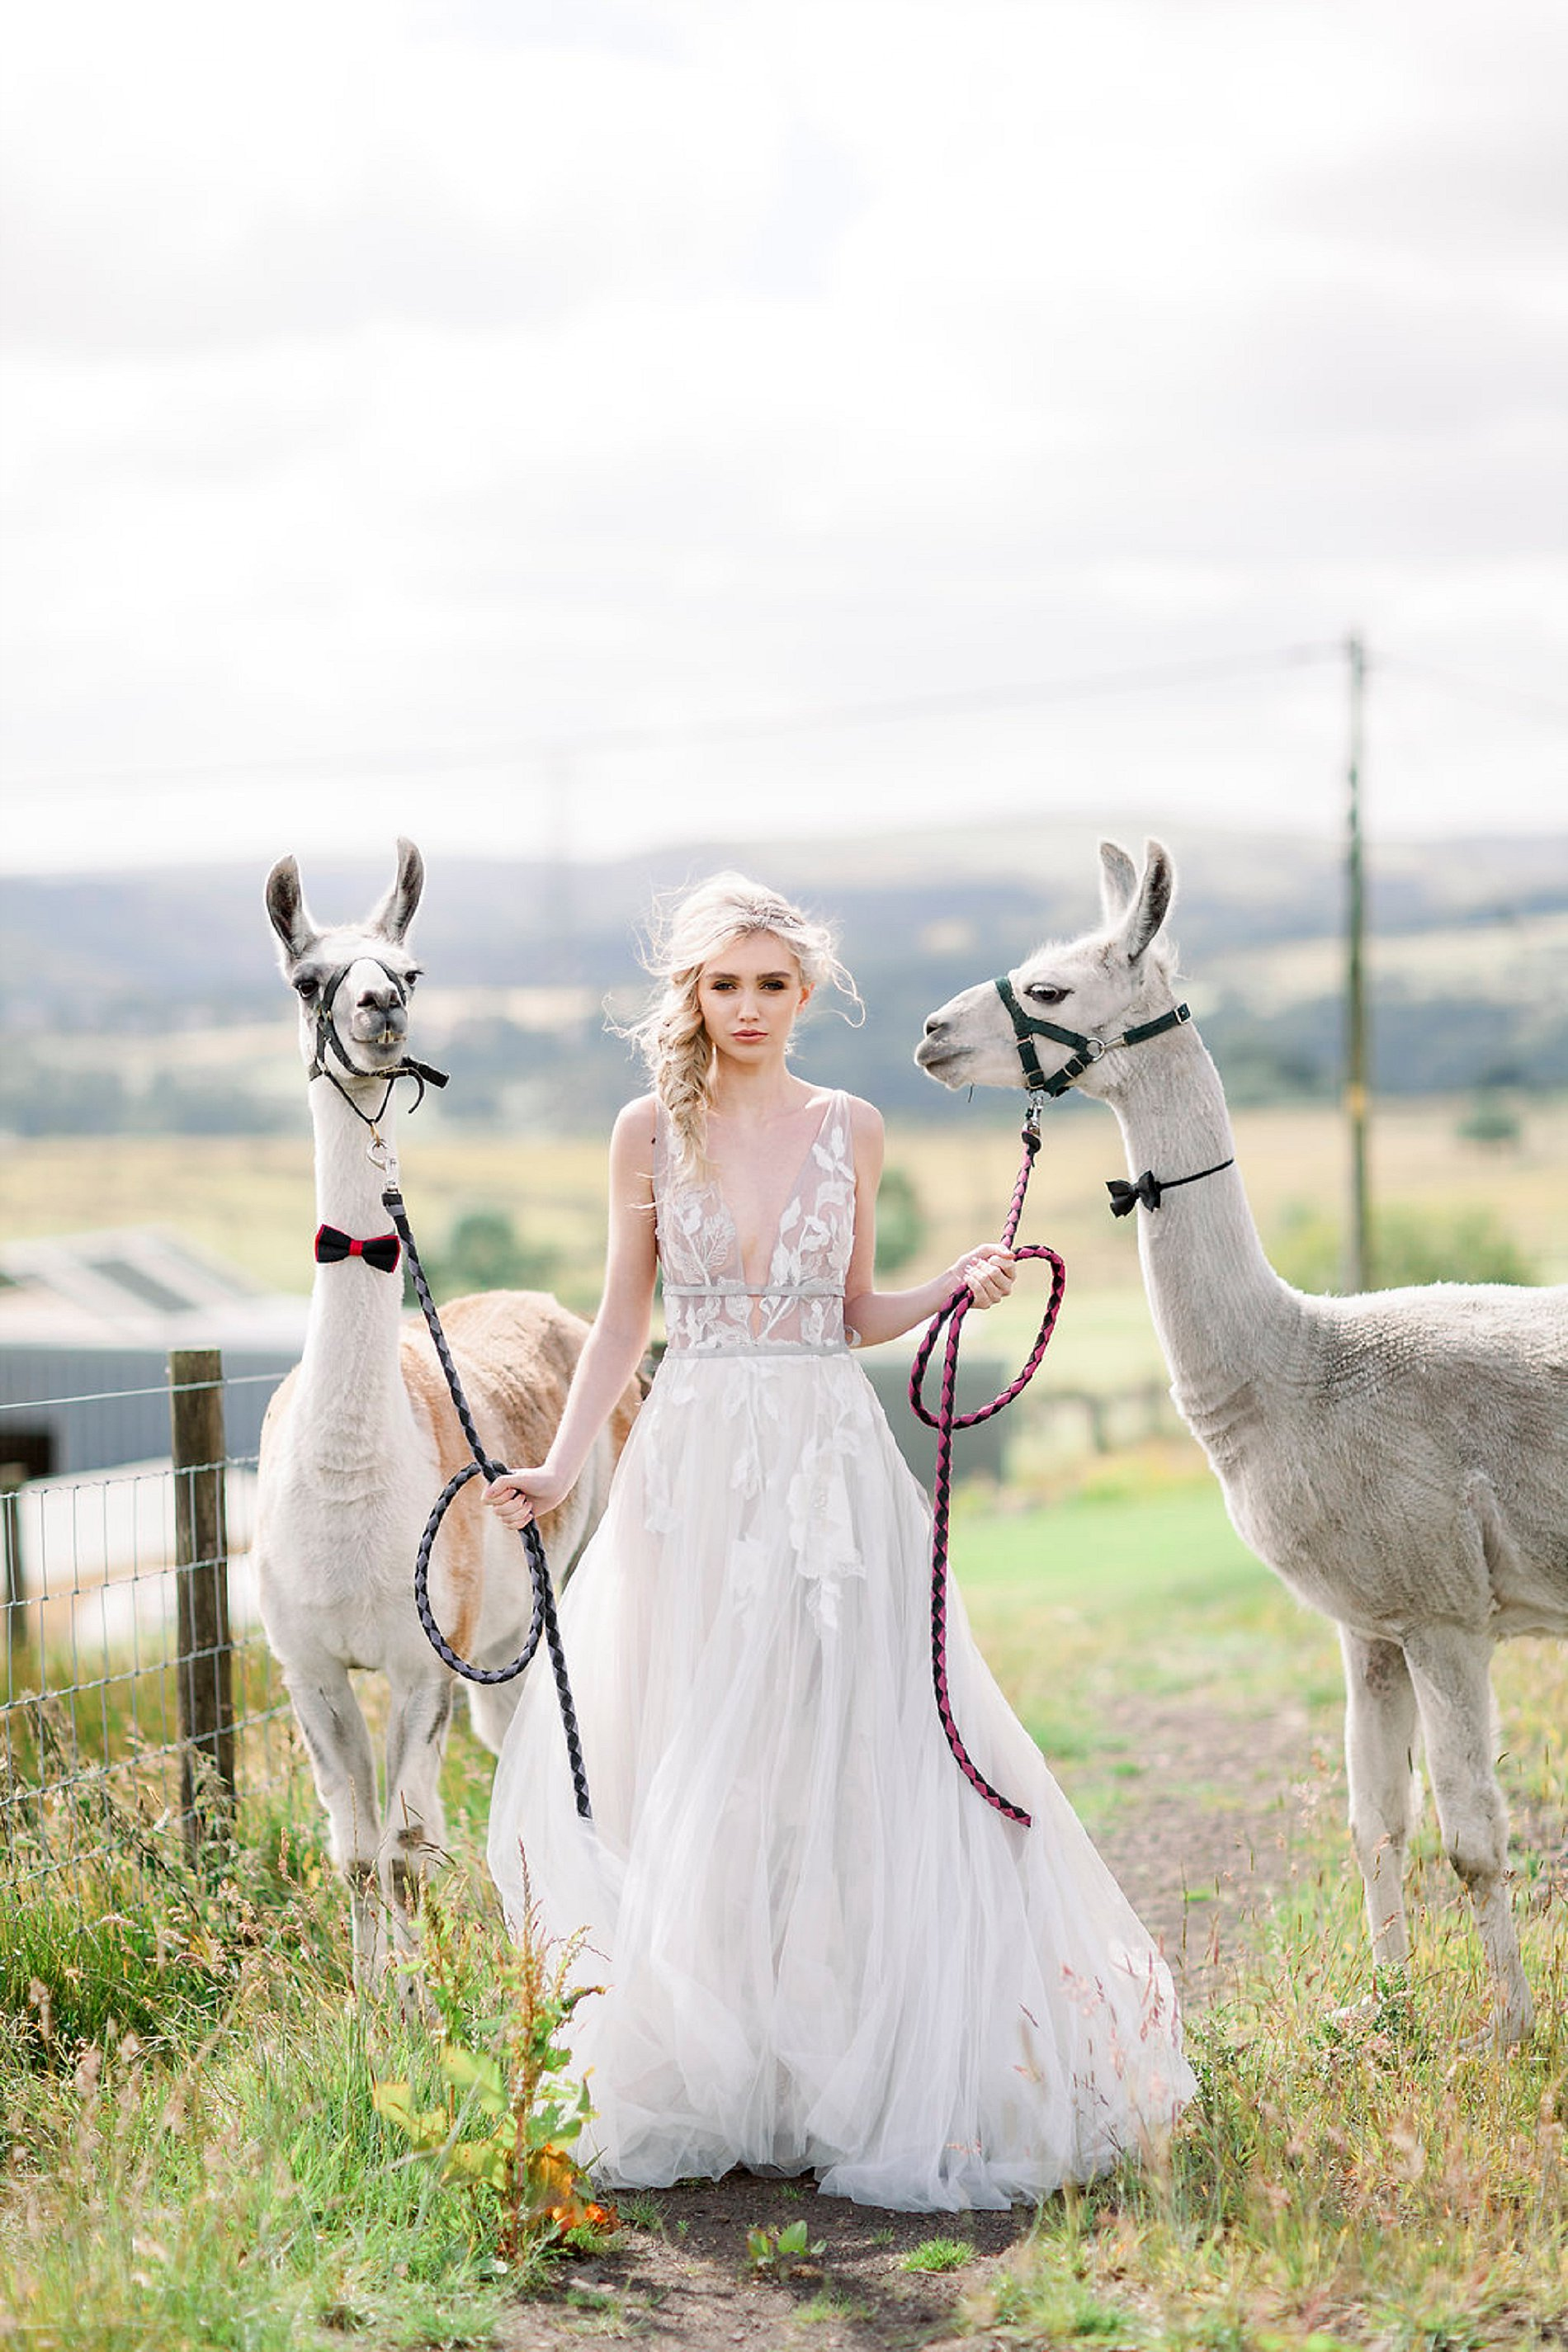 Super Natural Creative Bridal Editorial (c) Jo Bradbury (27)